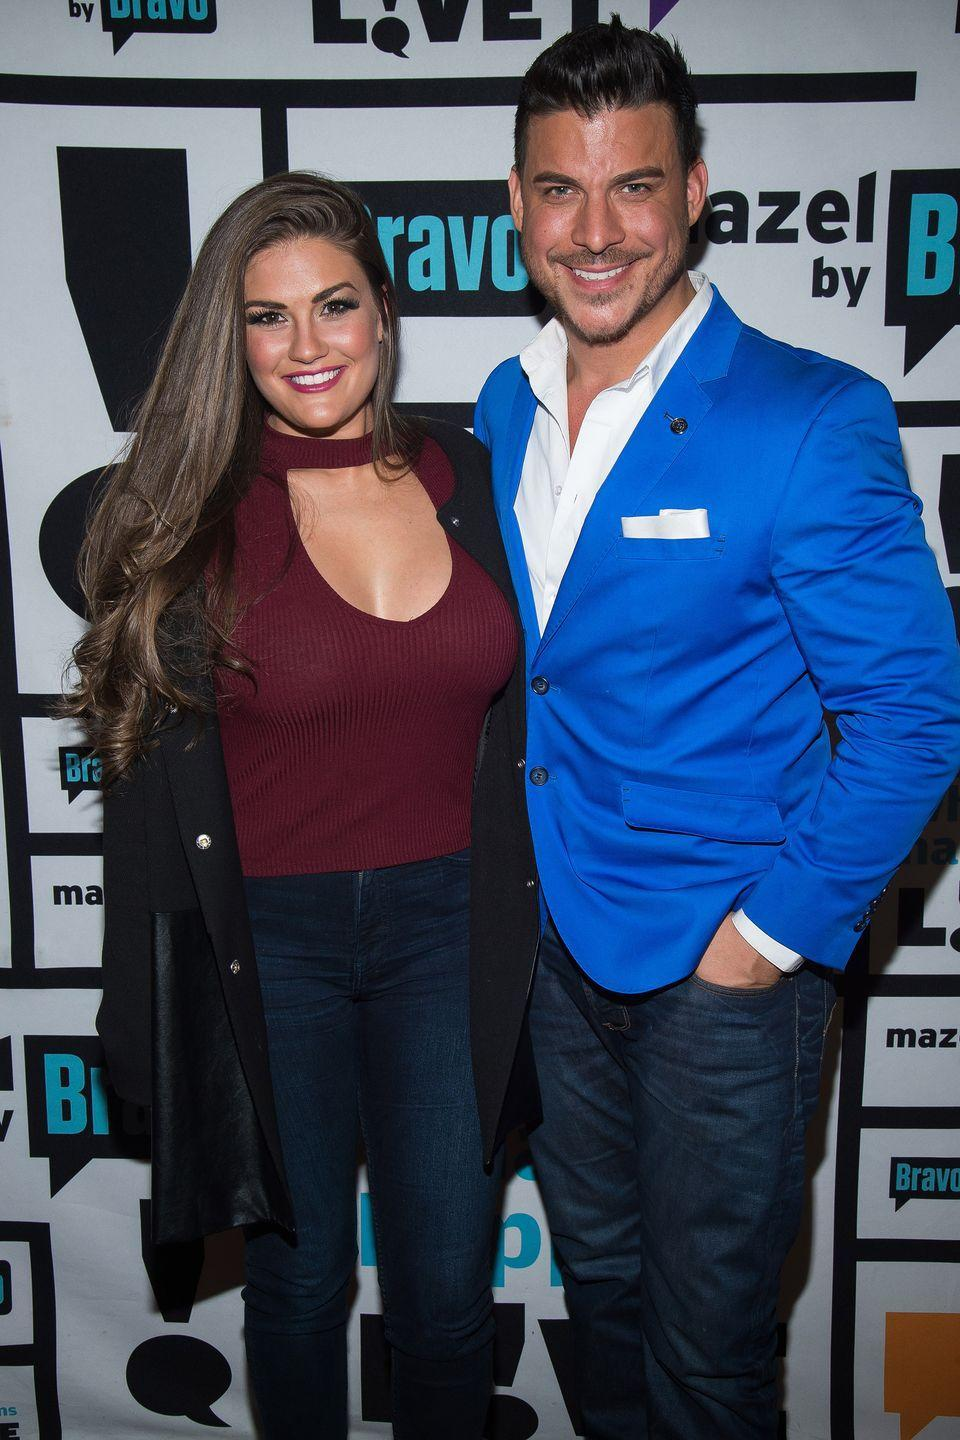 """<p>After Jax did in fact cheat during season 6 of <em>Vanderpump Rules</em> with SURver Faith Stowers, Brittany couldn't let her heart give him up. She's since given him a second chance and the pair are currently engaged. """"I see him every single day making efforts and he's completely changed the way he treats me, the way he talks to me, the way he listens to me. Every single thing about our relationship is better,"""" <a href=""""https://www.usmagazine.com/celebrity-news/pictures/celebrity-couples-who-stayed-together-after-cheating-scandals/brittany-cartwright-and-jax-taylor/"""" rel=""""nofollow noopener"""" target=""""_blank"""" data-ylk=""""slk:she told Us Weekly"""" class=""""link rapid-noclick-resp"""">she told <em>Us Weekly</em></a> back in 2018.</p>"""